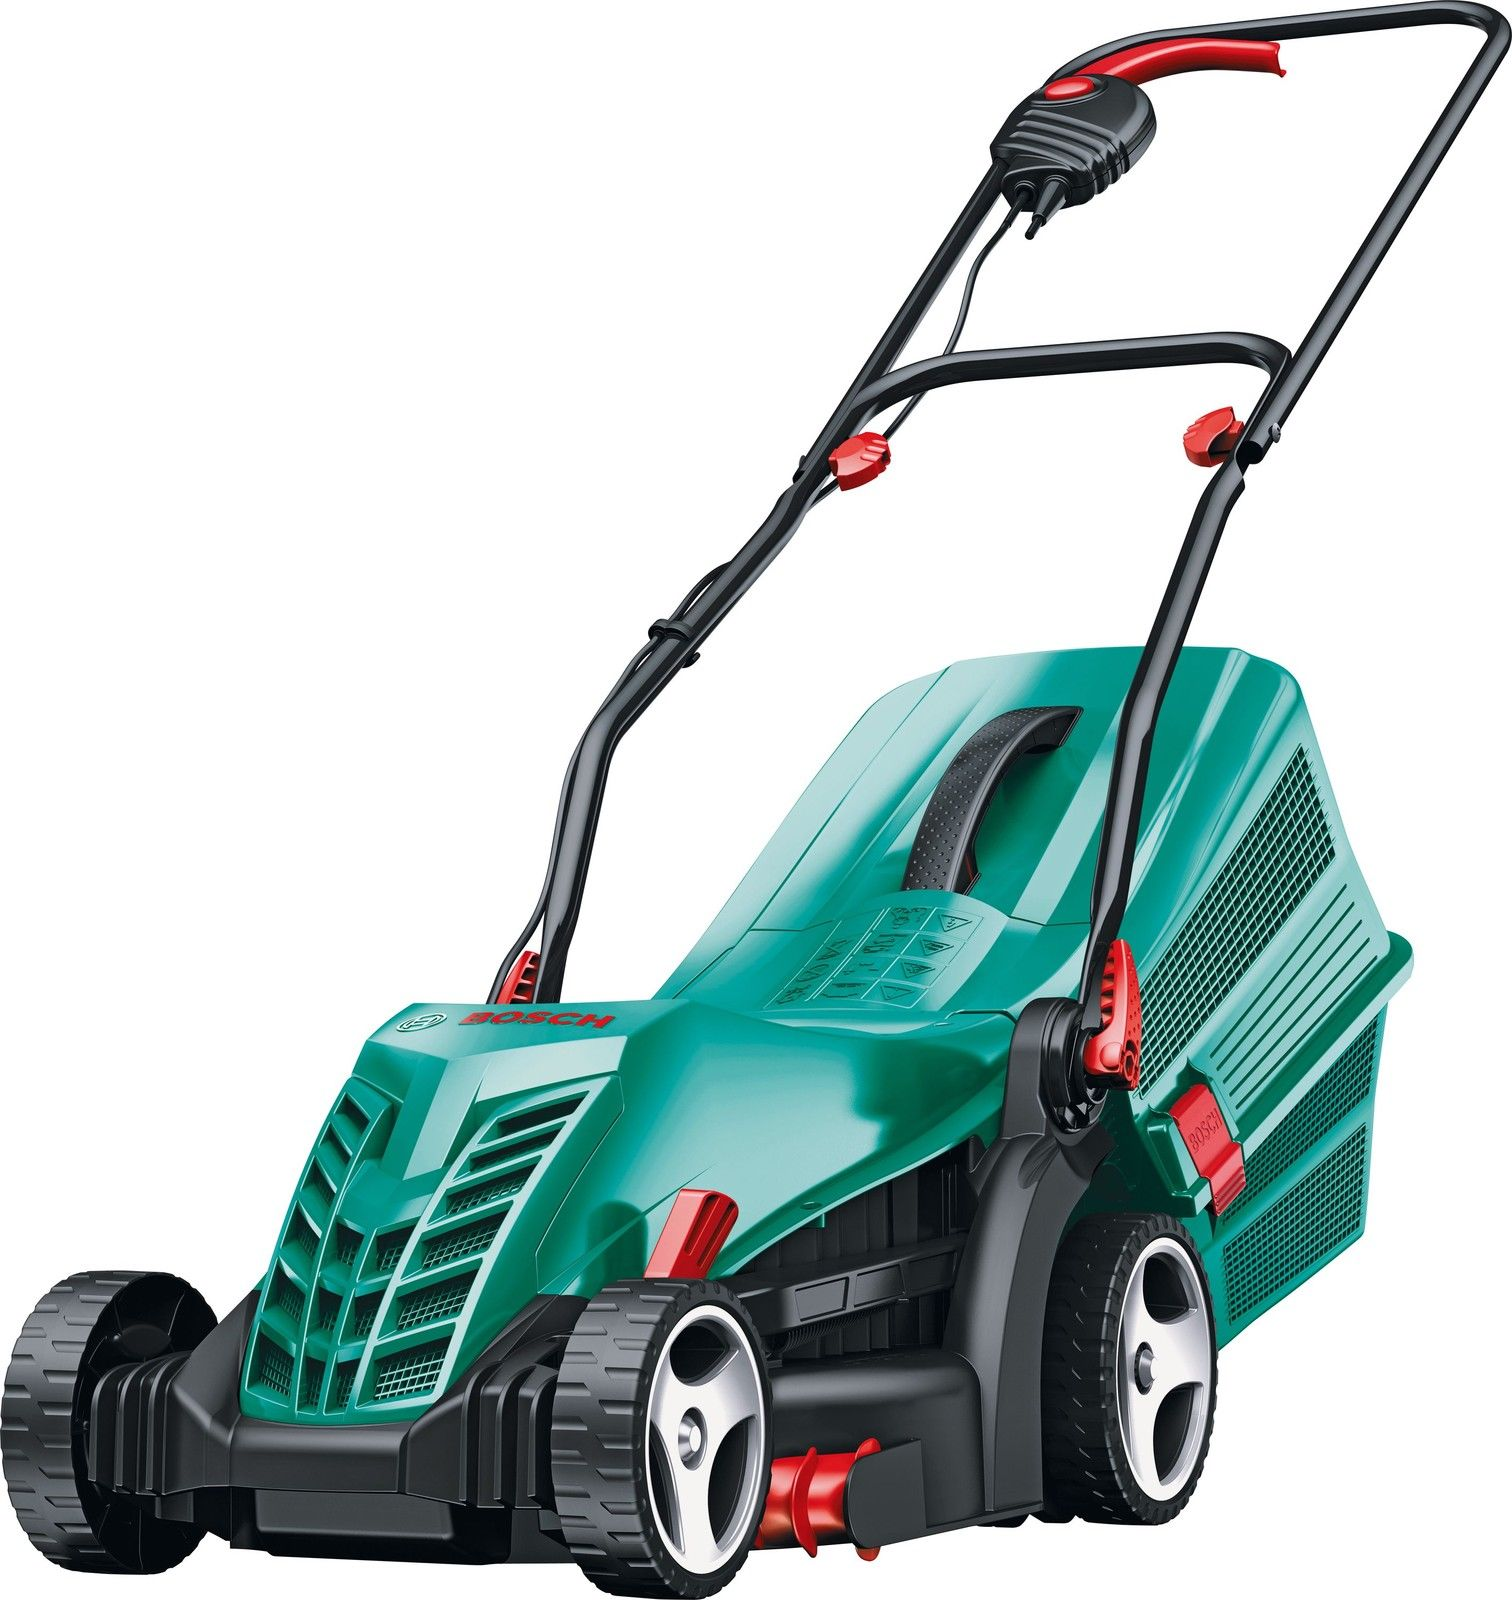 Bosch Rotak 34R Electric Rotary Lawnmower with Rear Roller